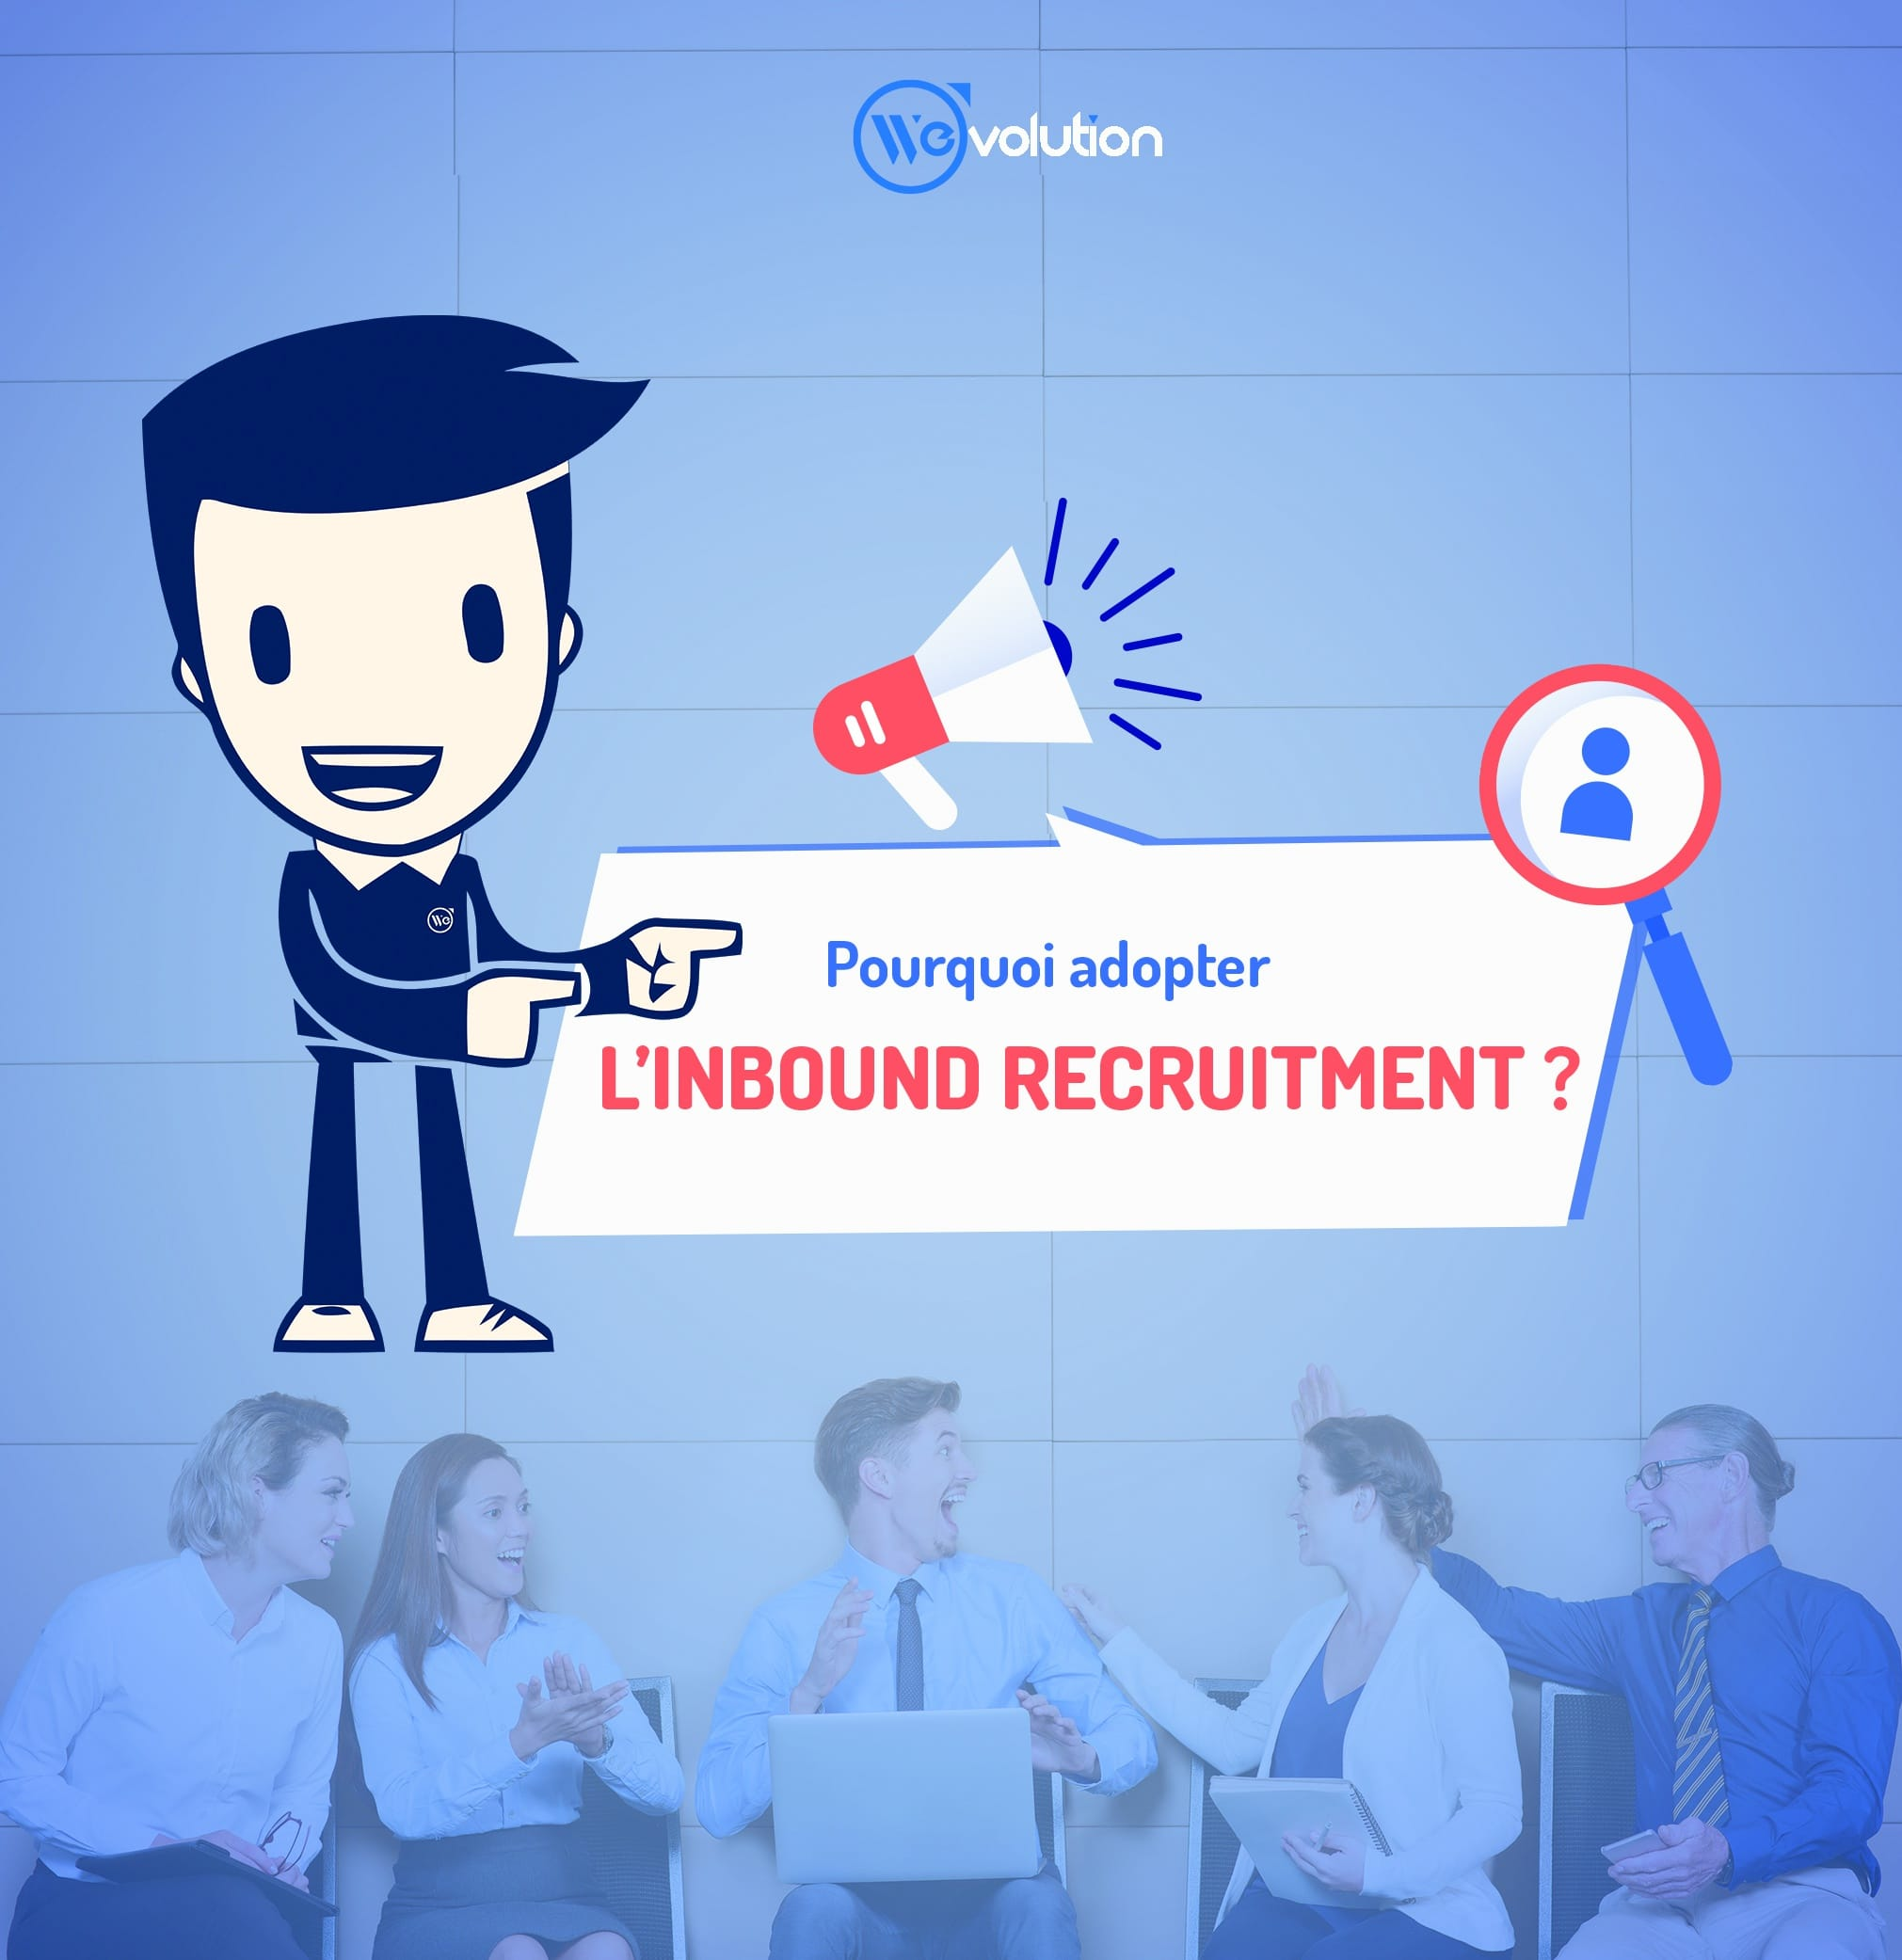 Pourquoi adopter l'Inbound recruitment ?